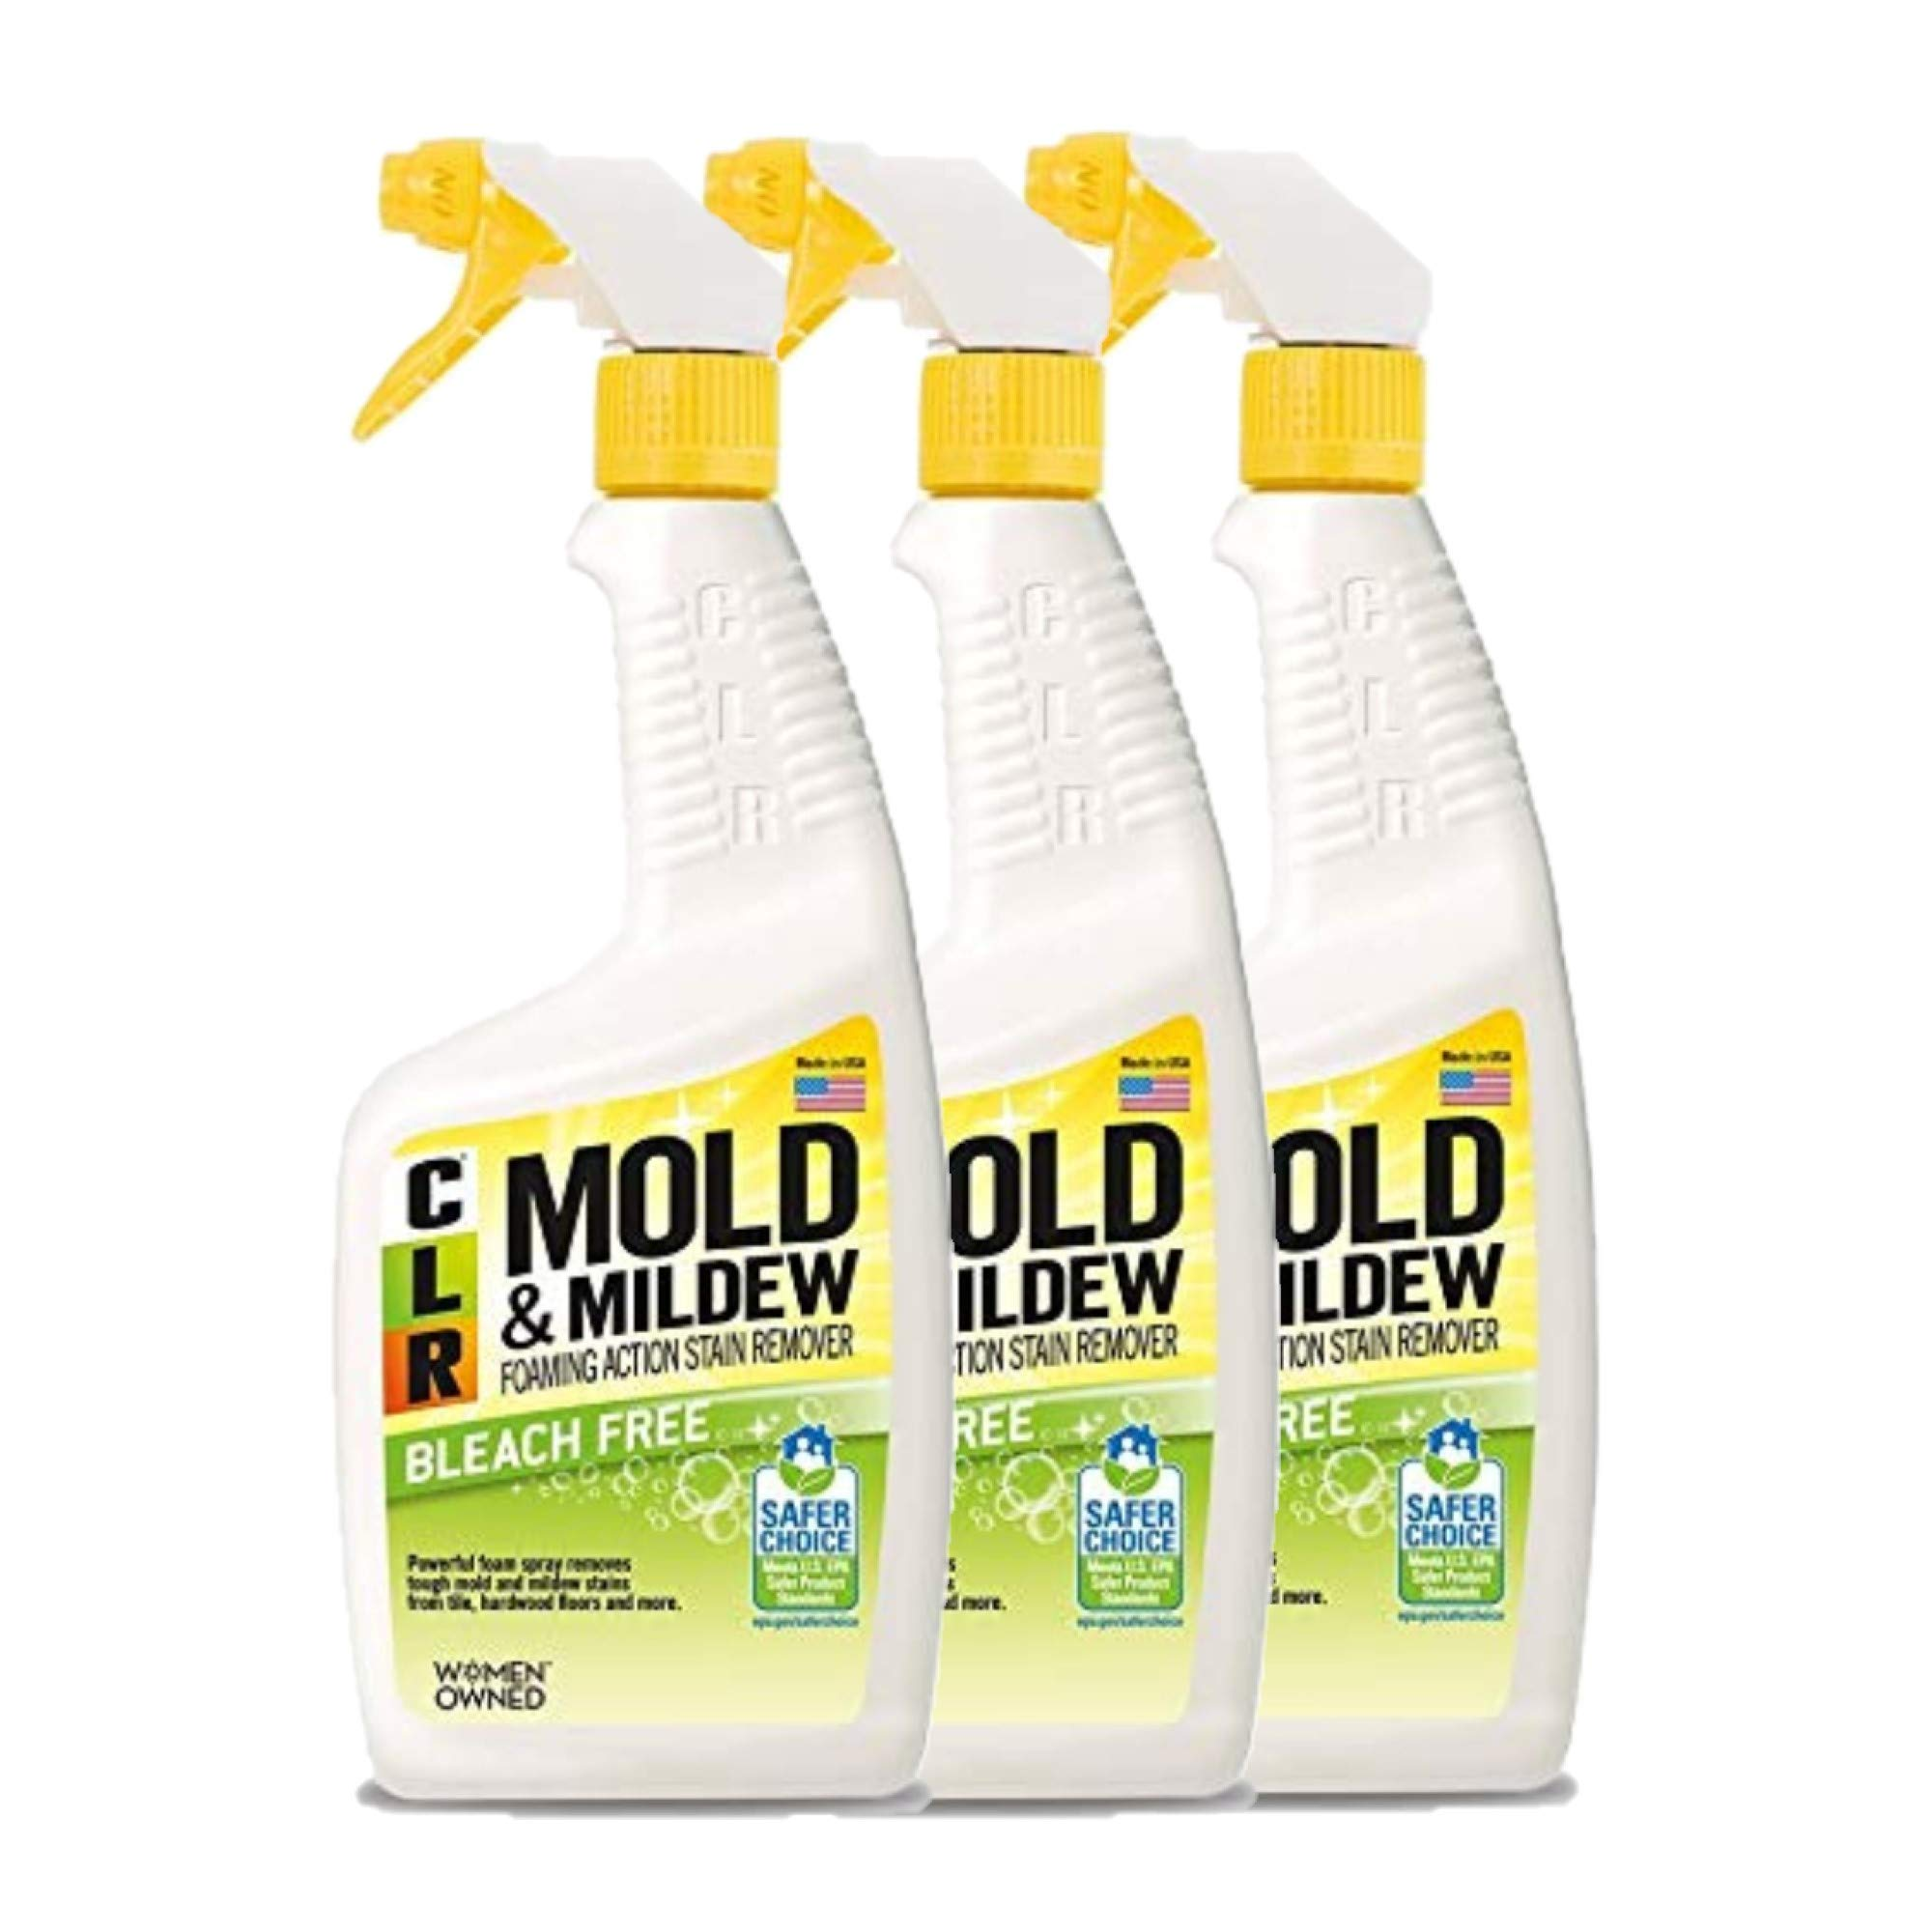 CLR PB-CMM-6 Mold and Mildew Stain Remover, 32 oz. Spray Bottle (3) by CLR (Image #1)